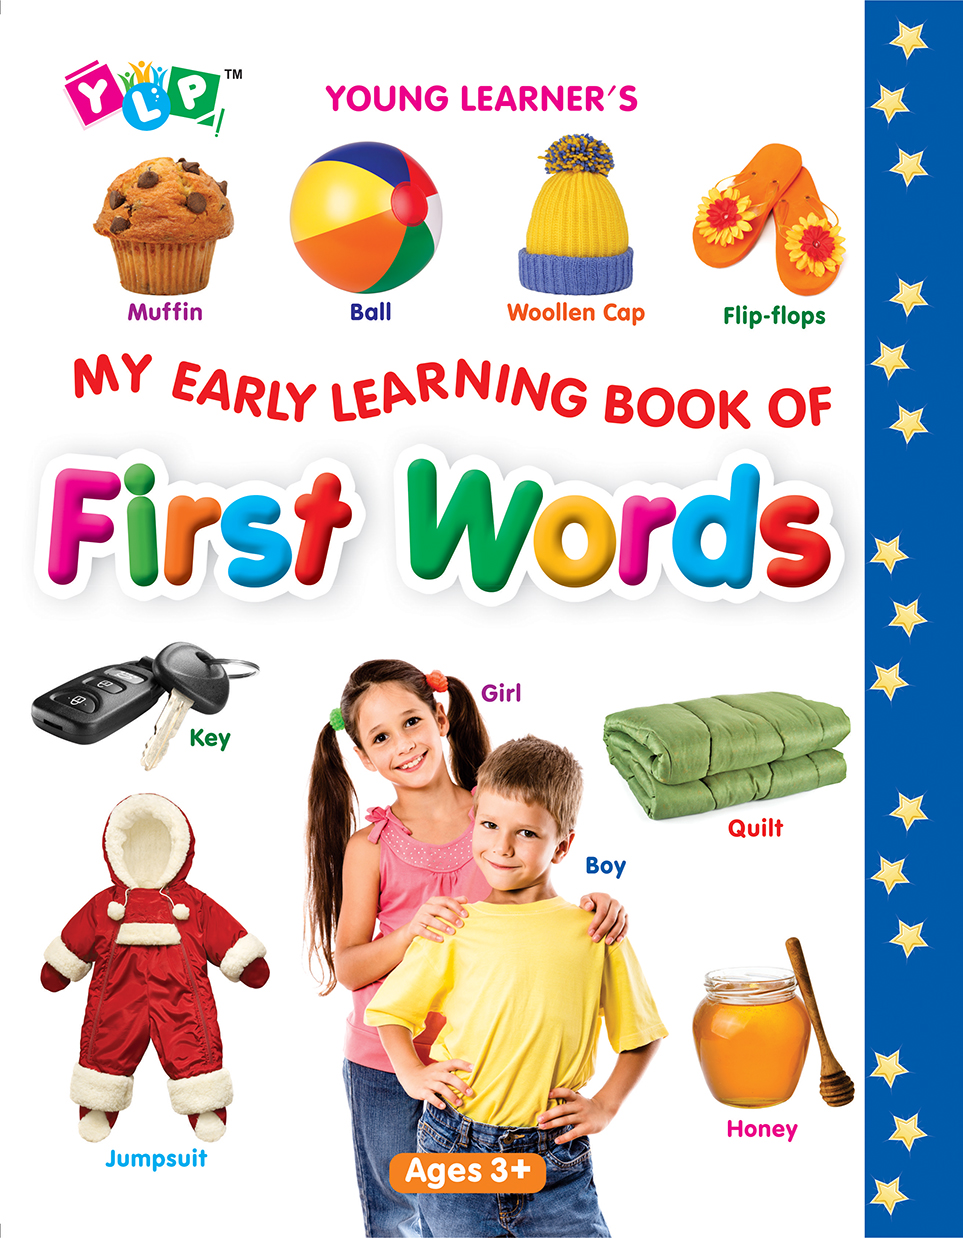 My Early Learning Book of First Words (Full Laminated)